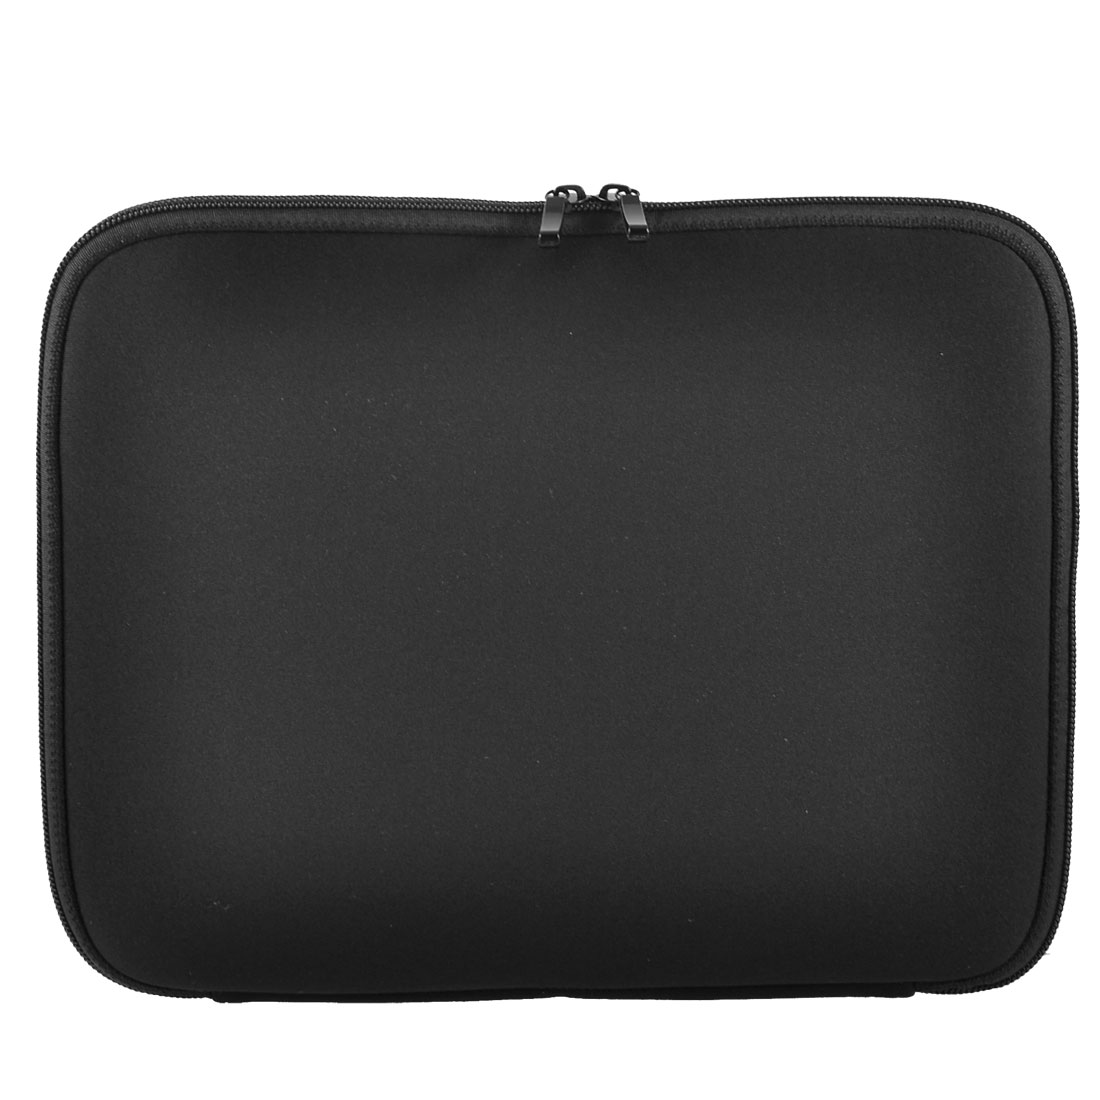 "13"" 13.1"" 13.3"" Laptop Zip Up Black Neoprene Sleeve Bag Case Pouch Cover"